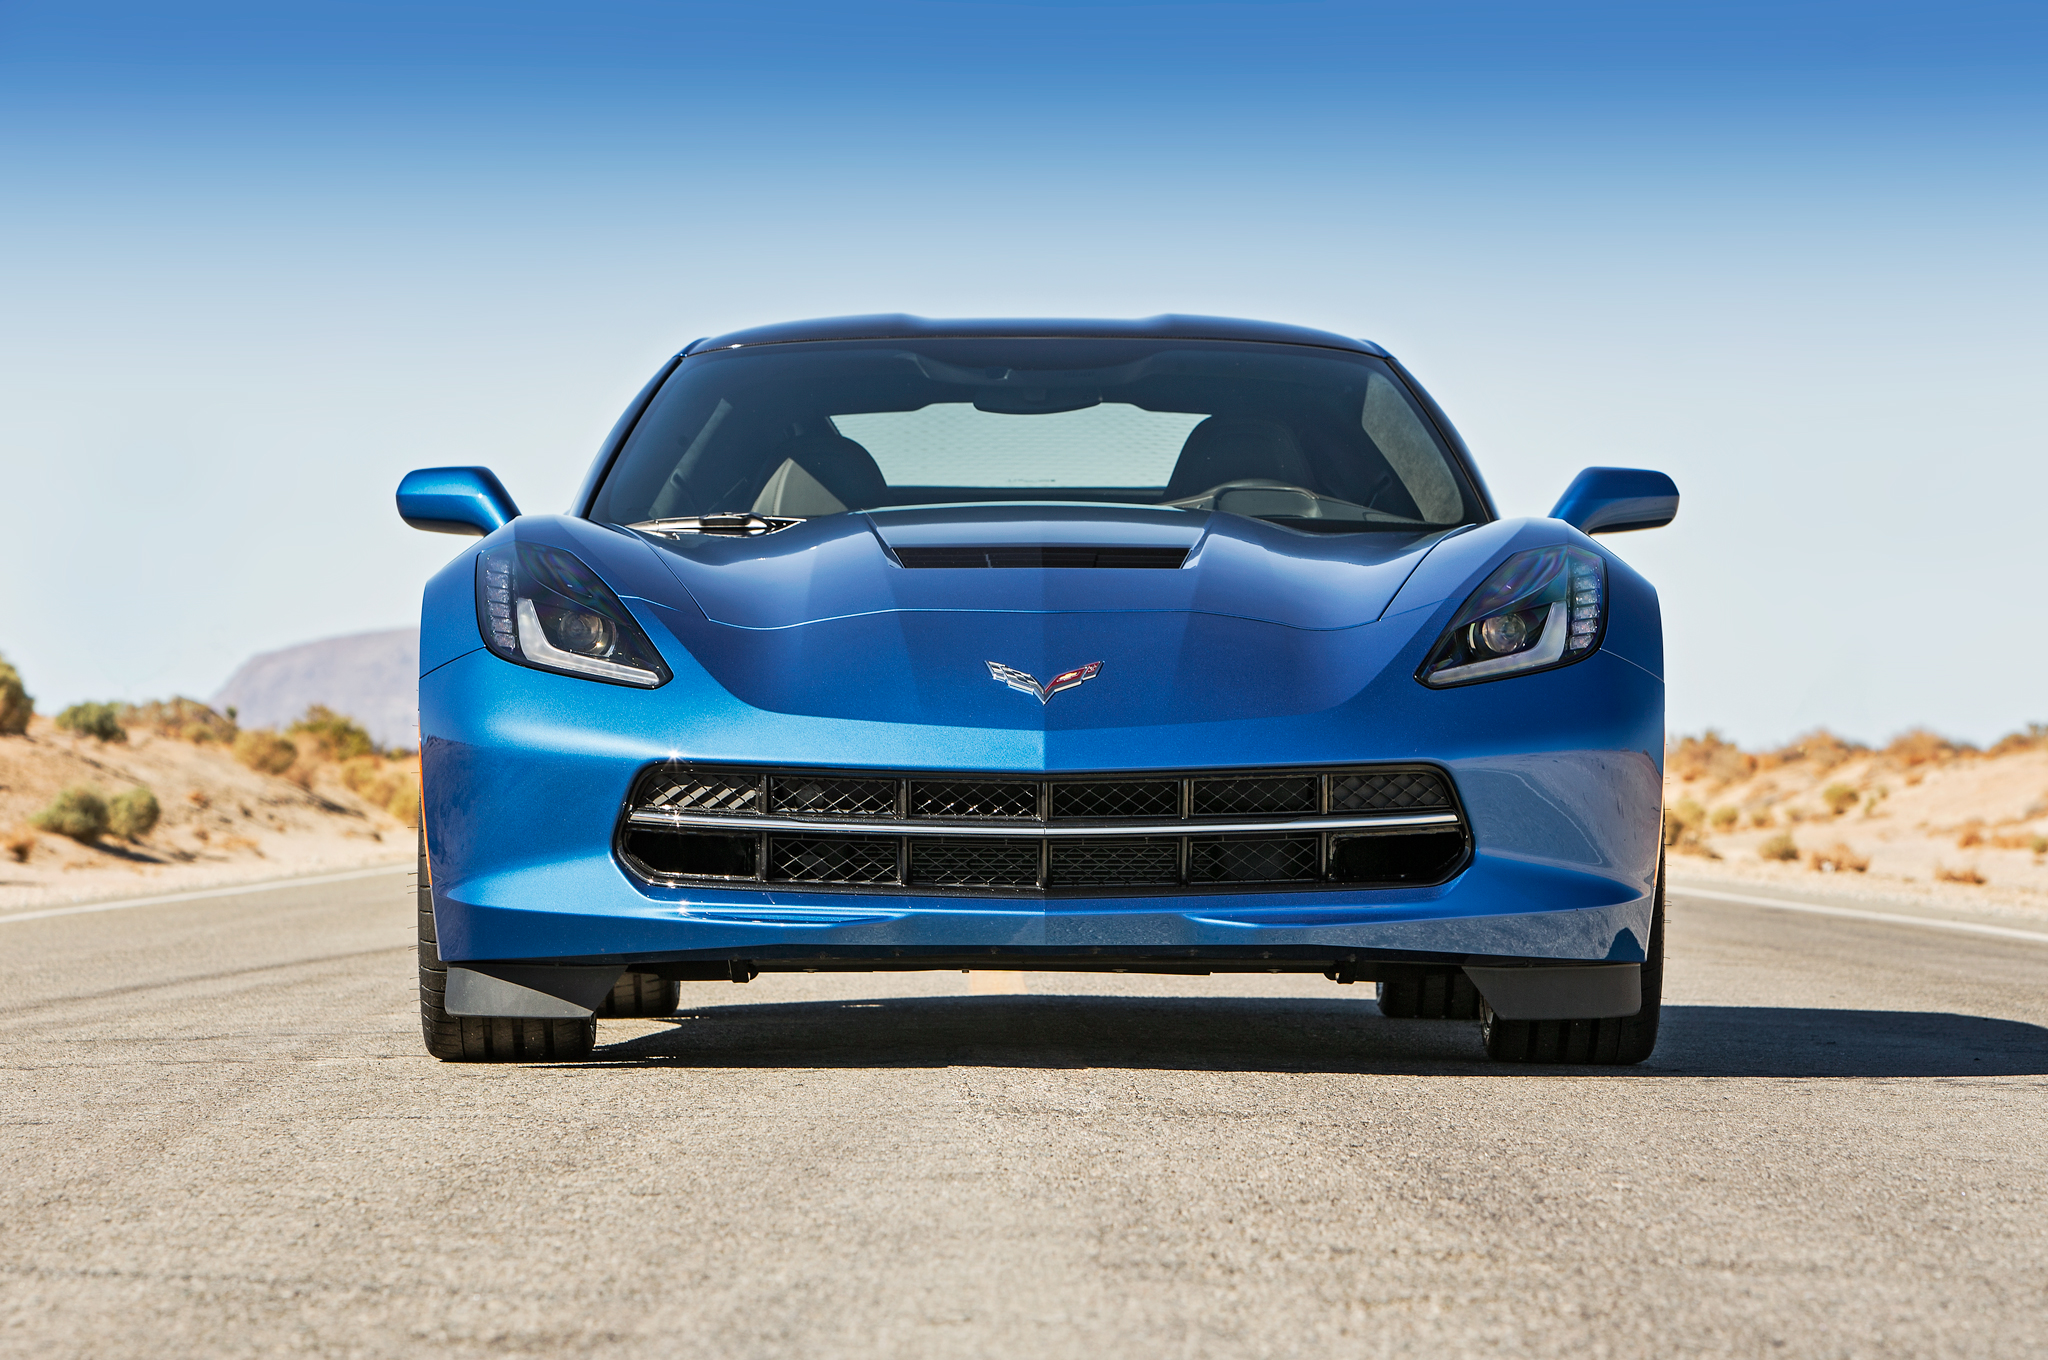 2014 Chevrolet Corvette Stingray Increased By 2000 Motor